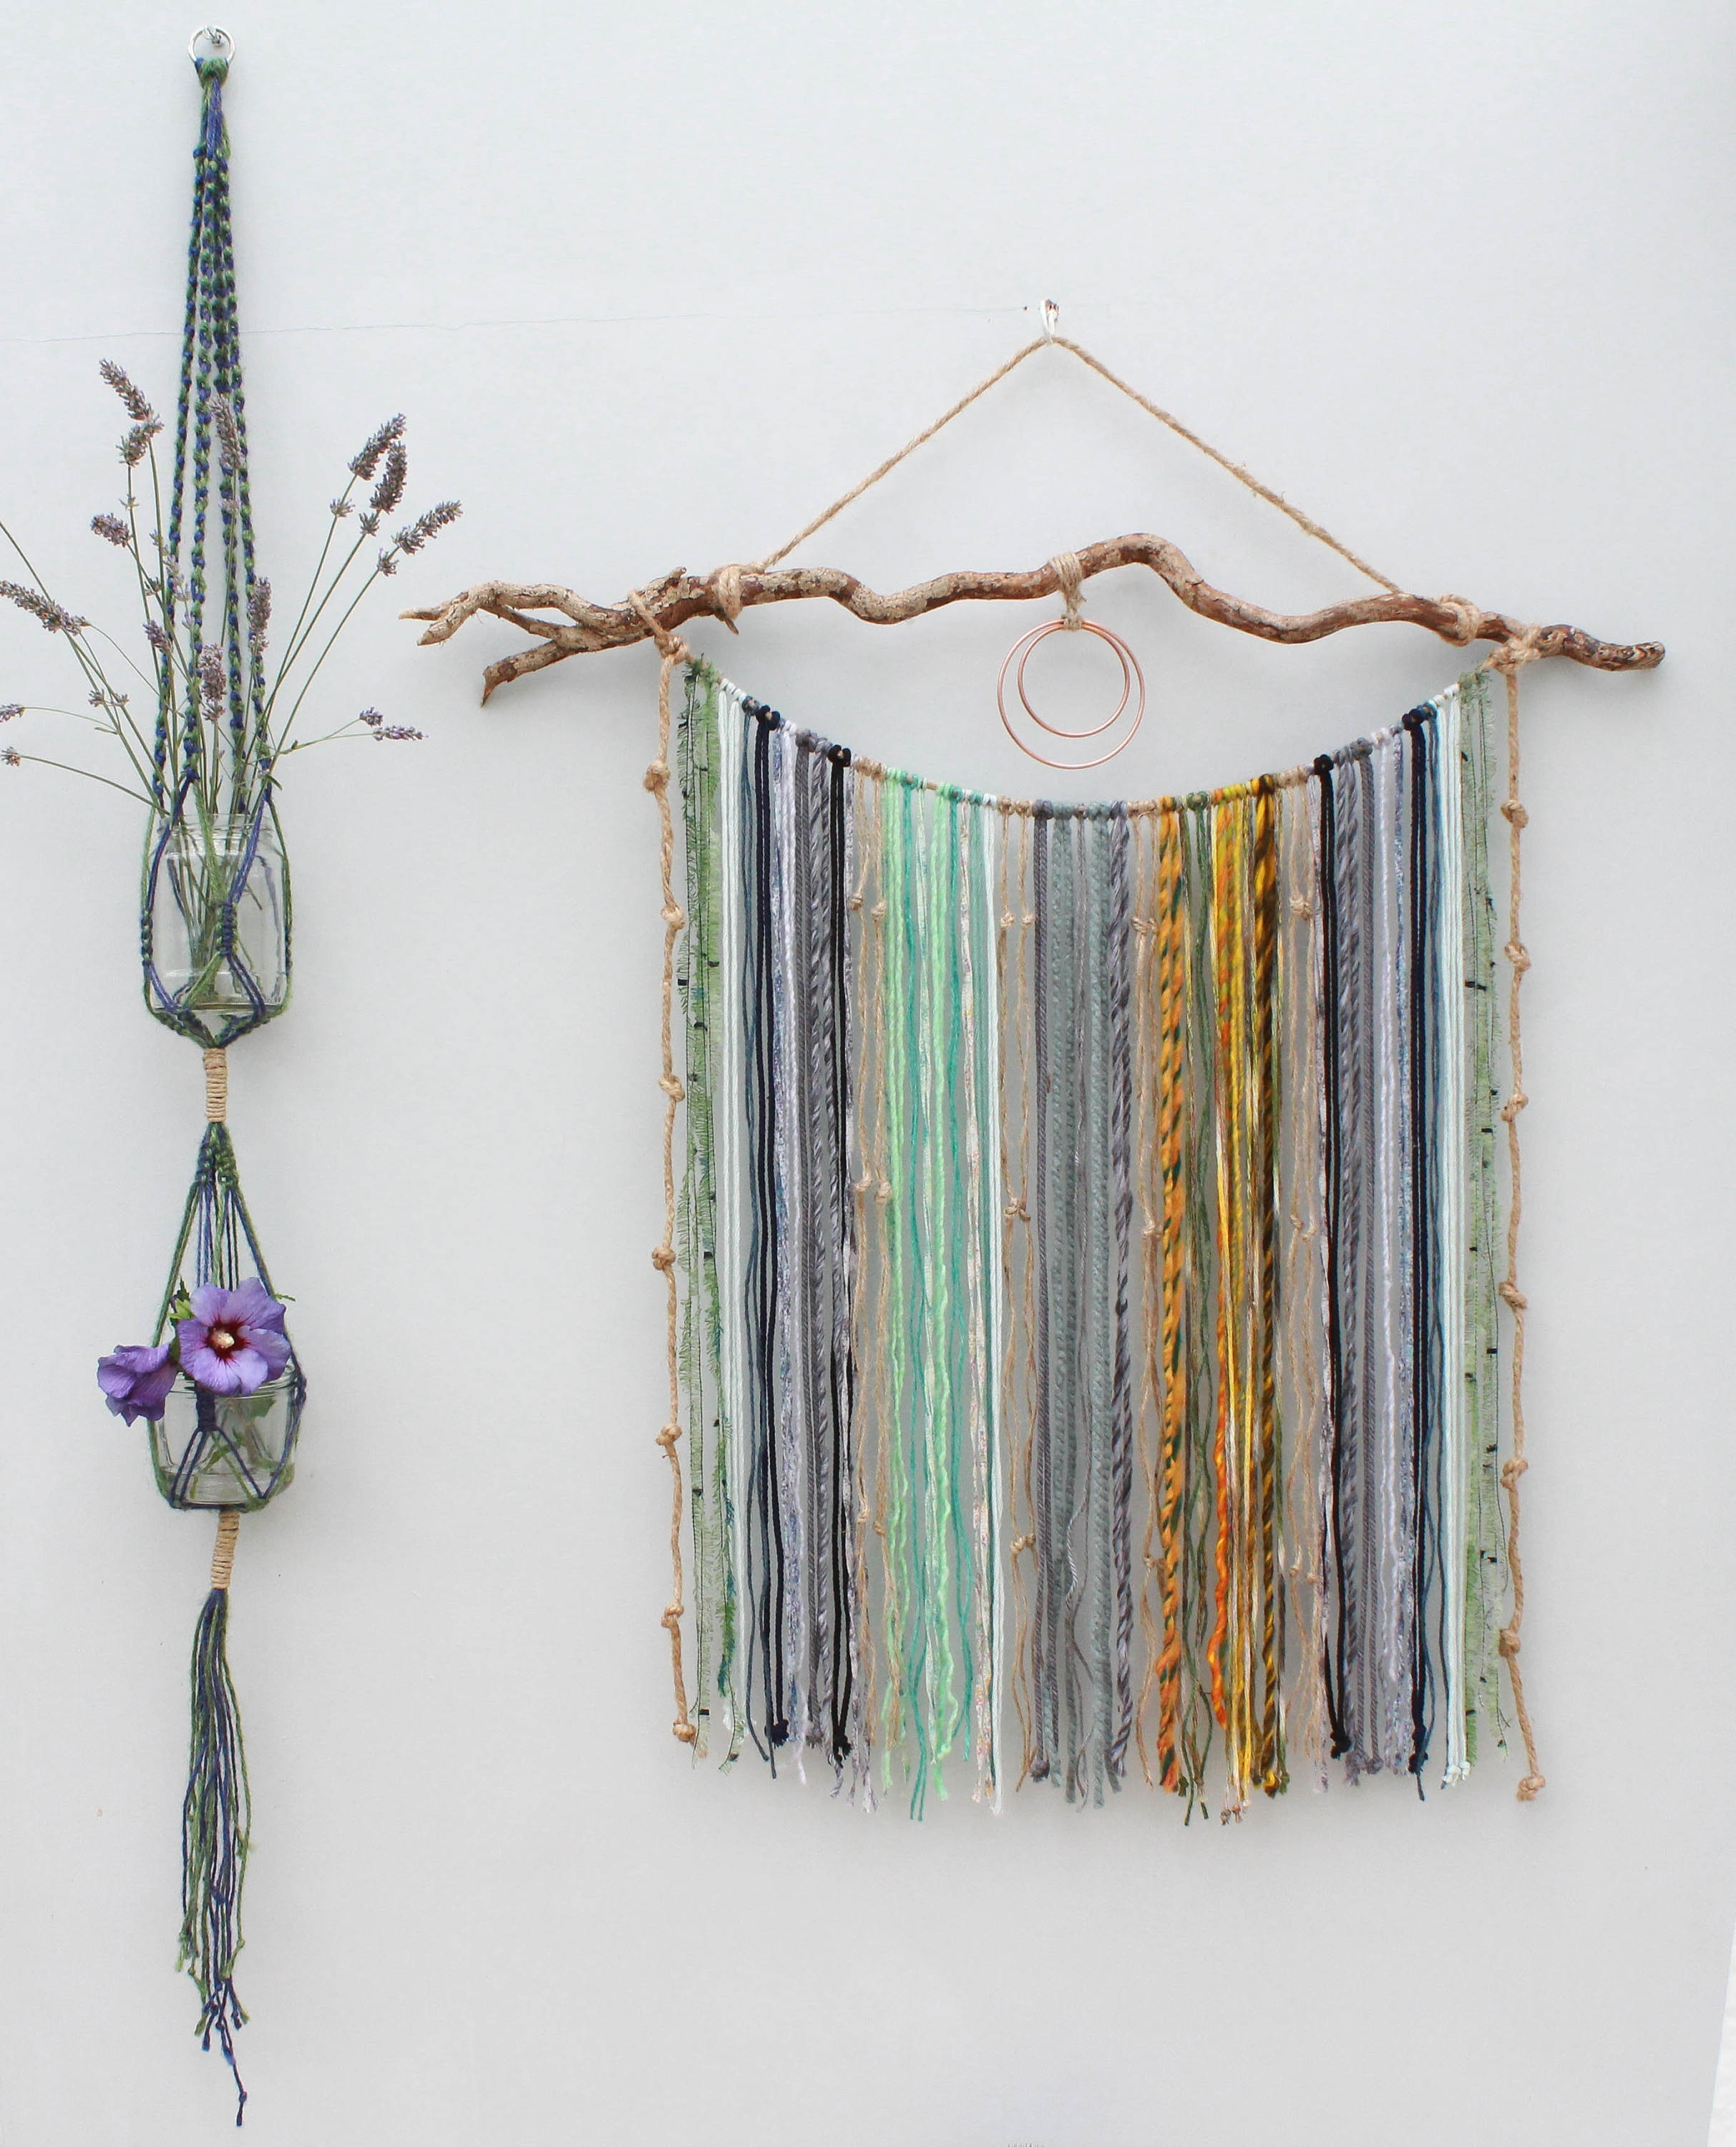 Large Macrame Yarn Wall Hanging On Driftwood/ Mixed Media Hanging In 2017 Yarn Wall Art (View 14 of 20)